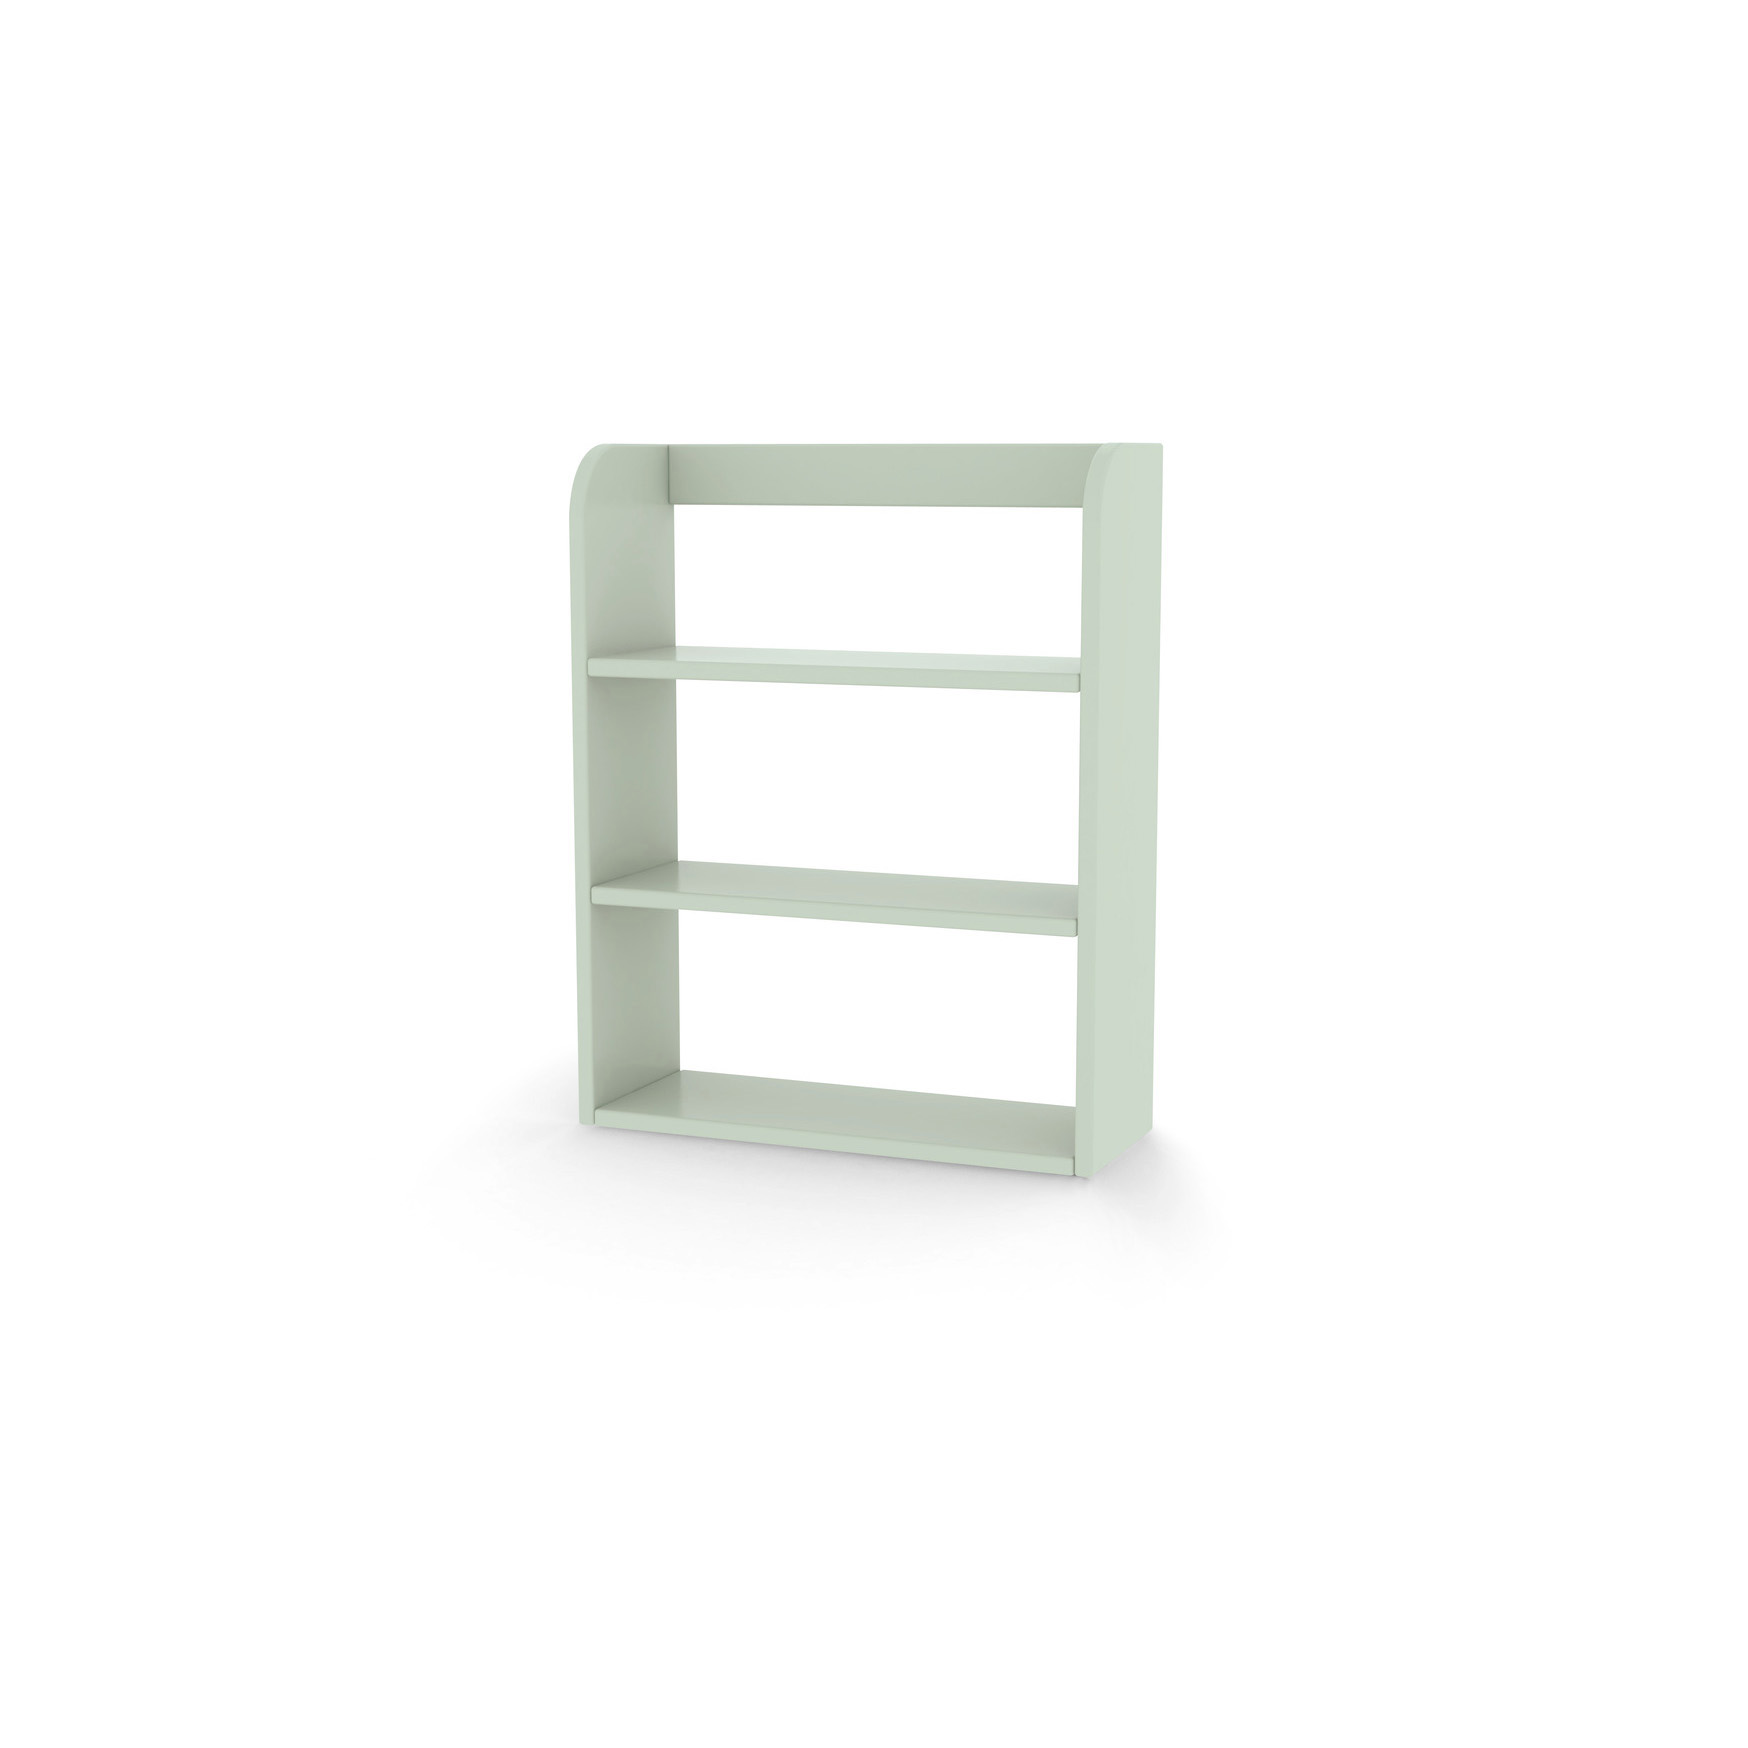 Flexa Play -Shelf Made - Mint Green at FADS.co.uk